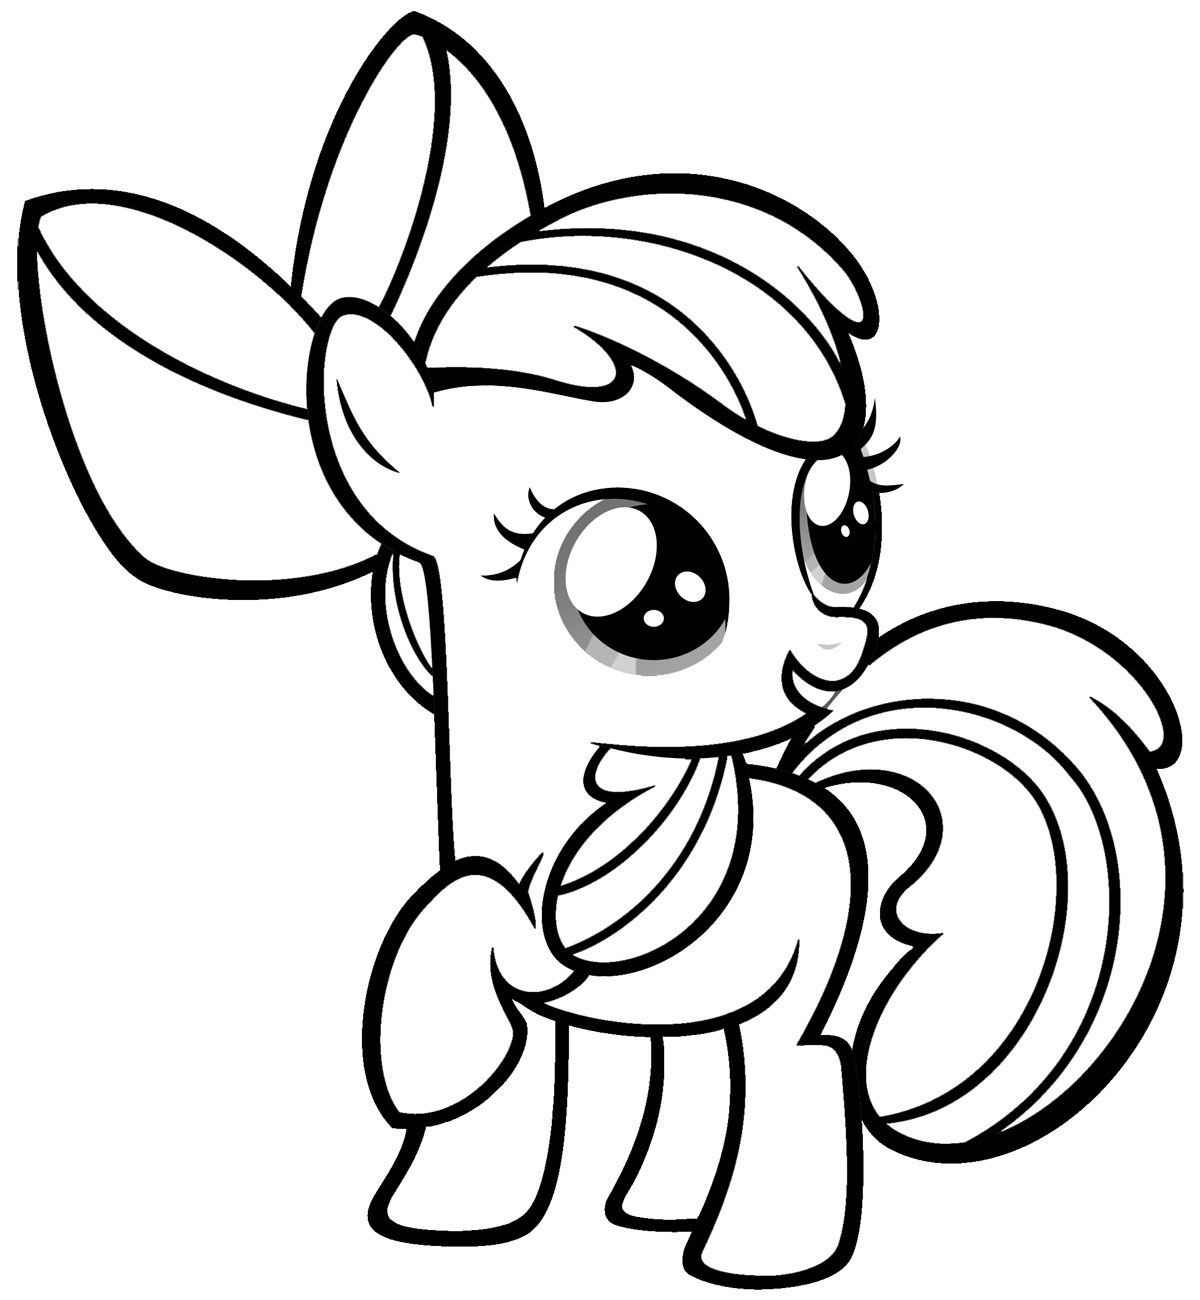 Free Printable My Little Pony Coloring Pages For Kids   Books Worth - Free Printable My Little Pony Coloring Pages